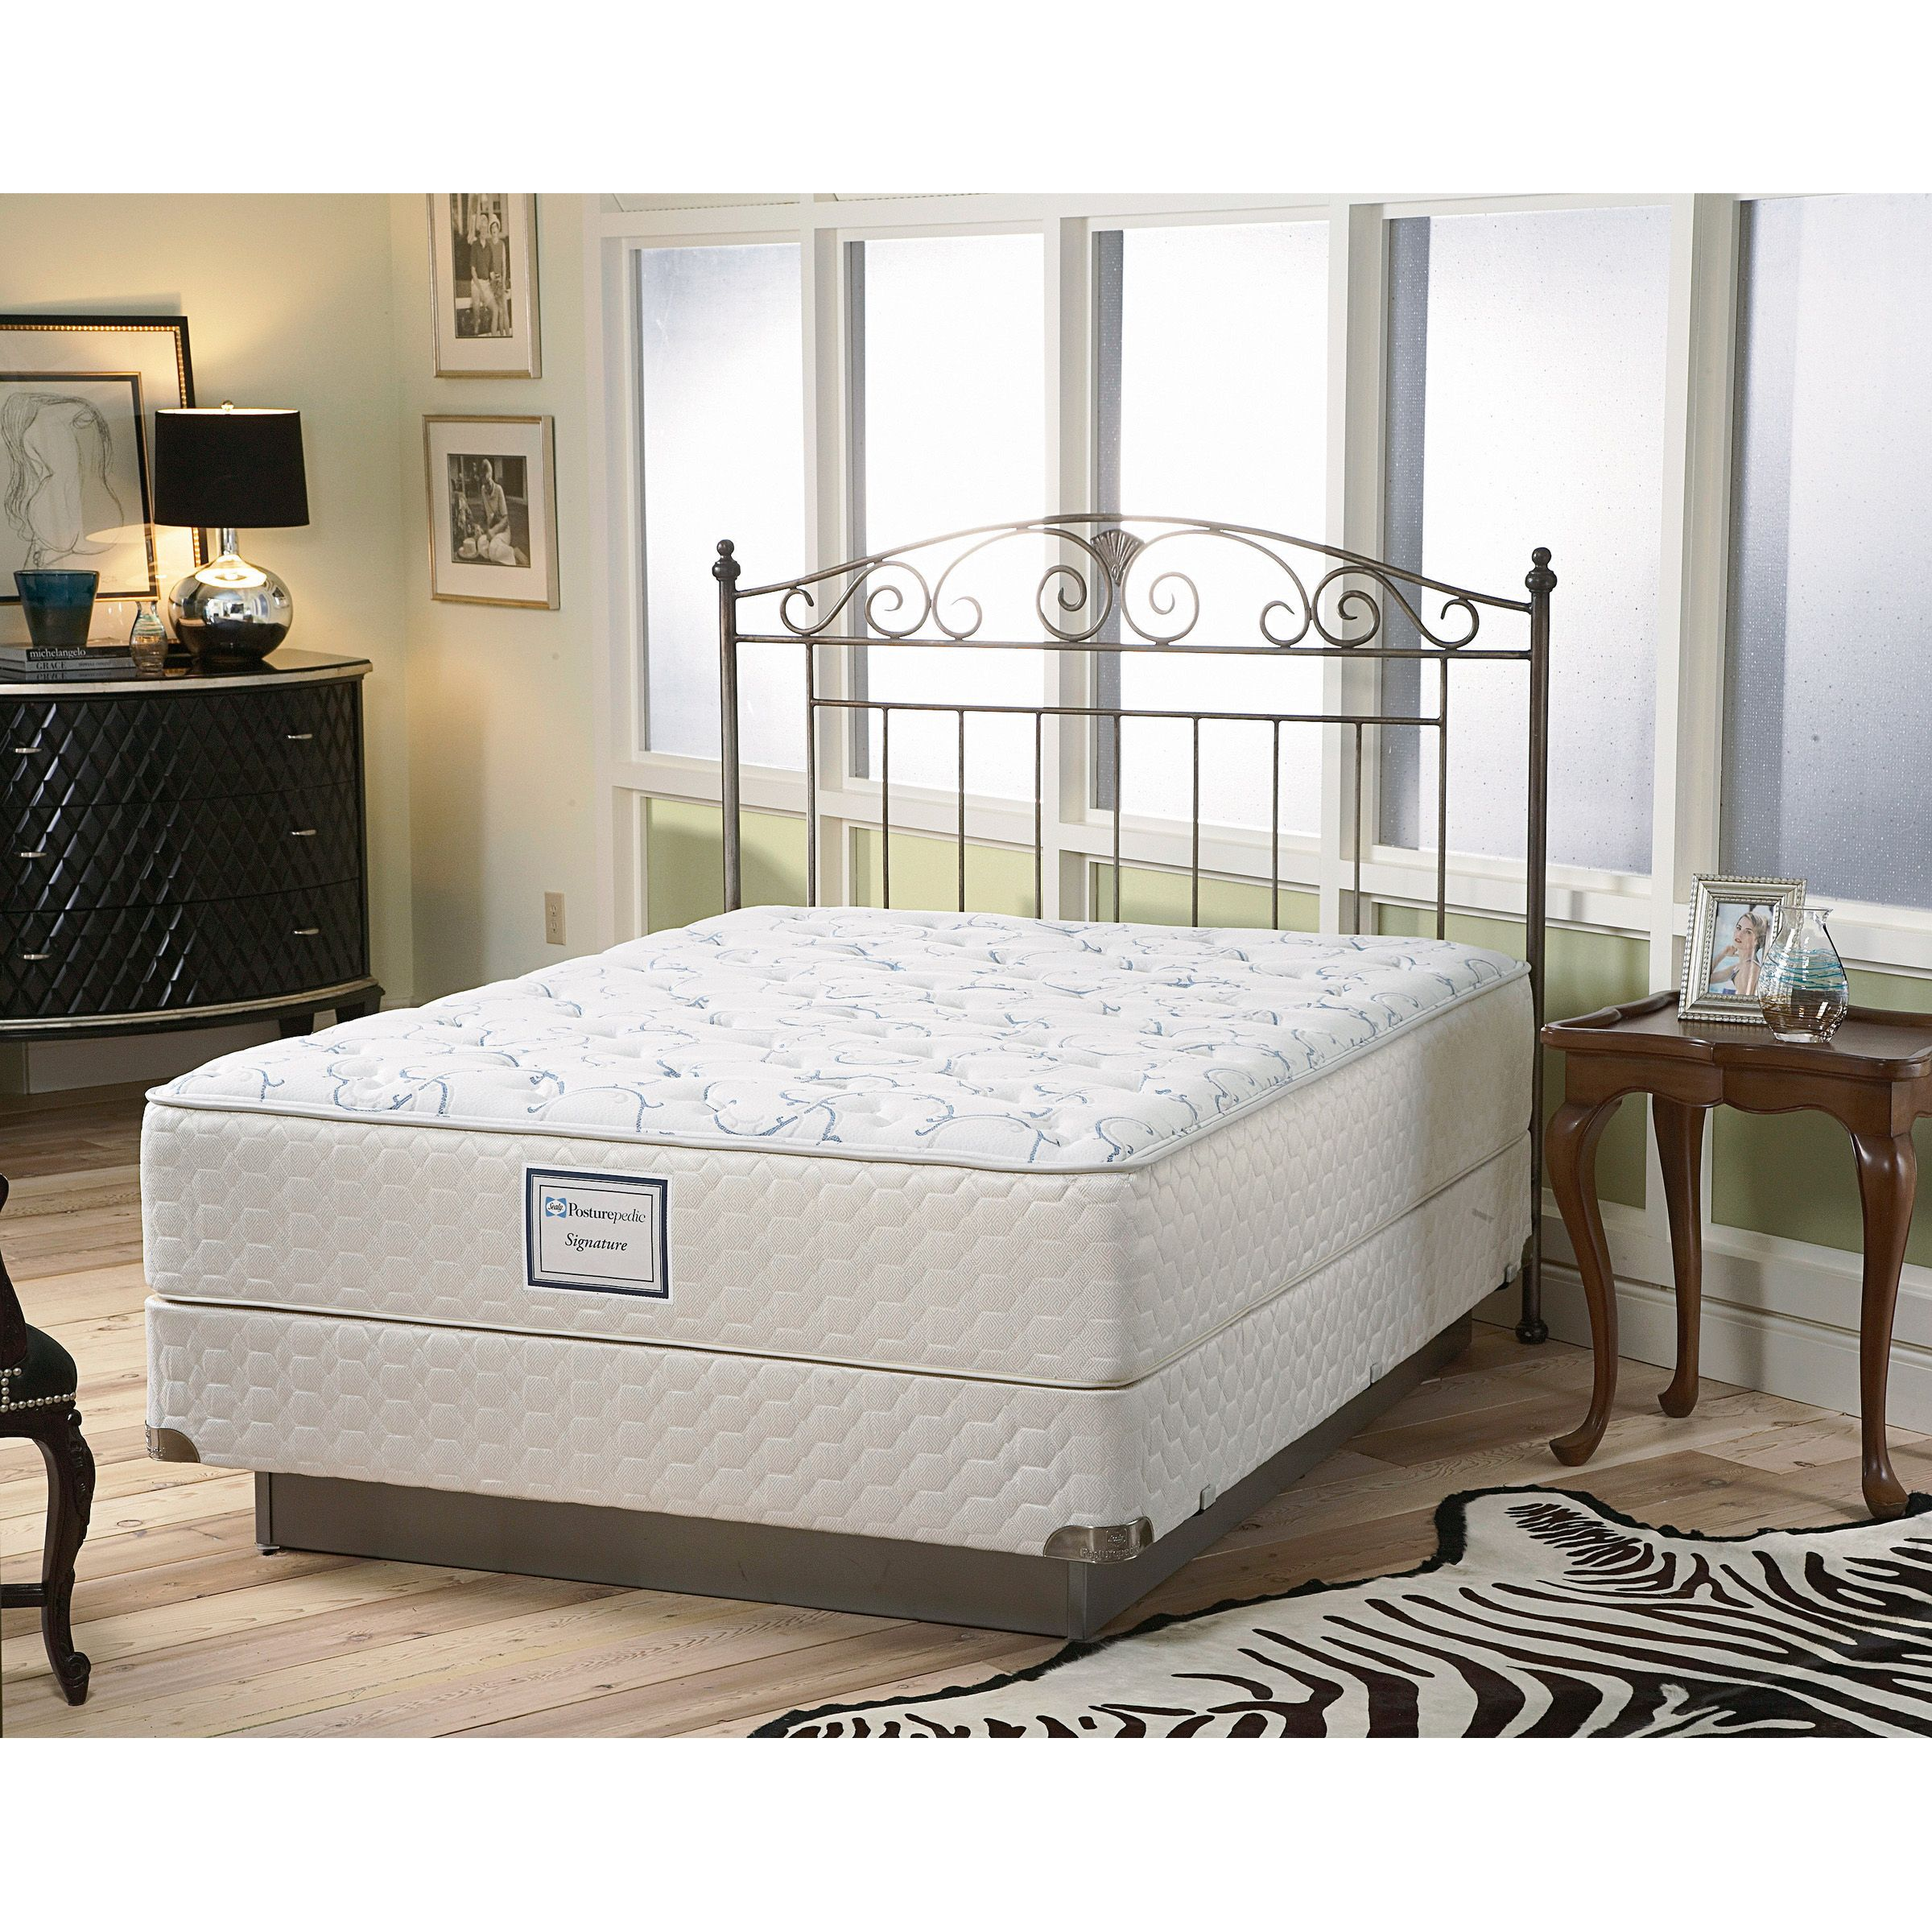 Sealy Posturepedic Posturepedic Candle Glow Cushion Firm II King Mattress Only